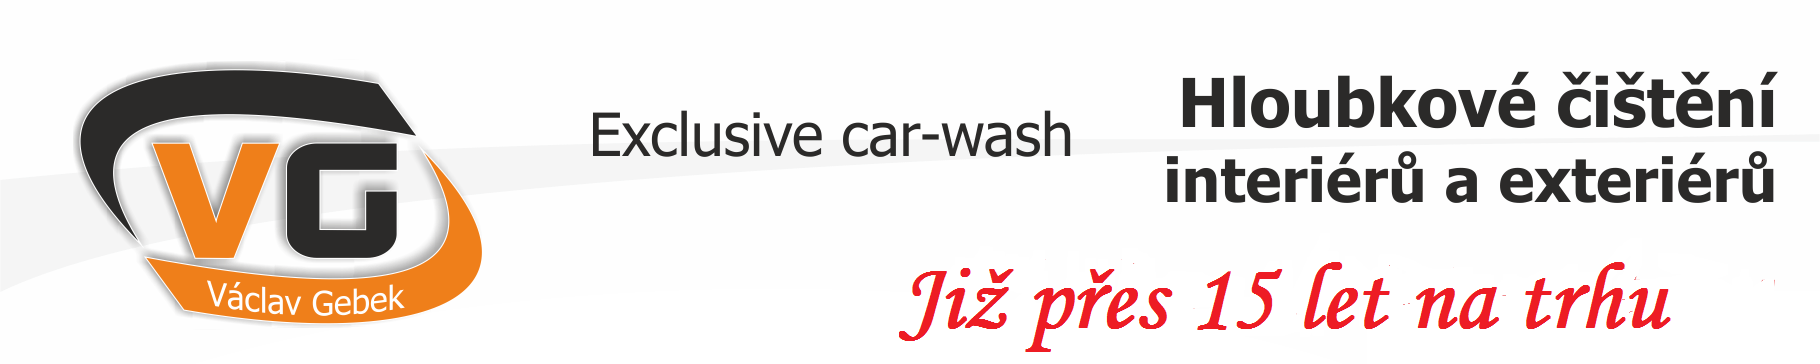 CAR-WASH exclusive